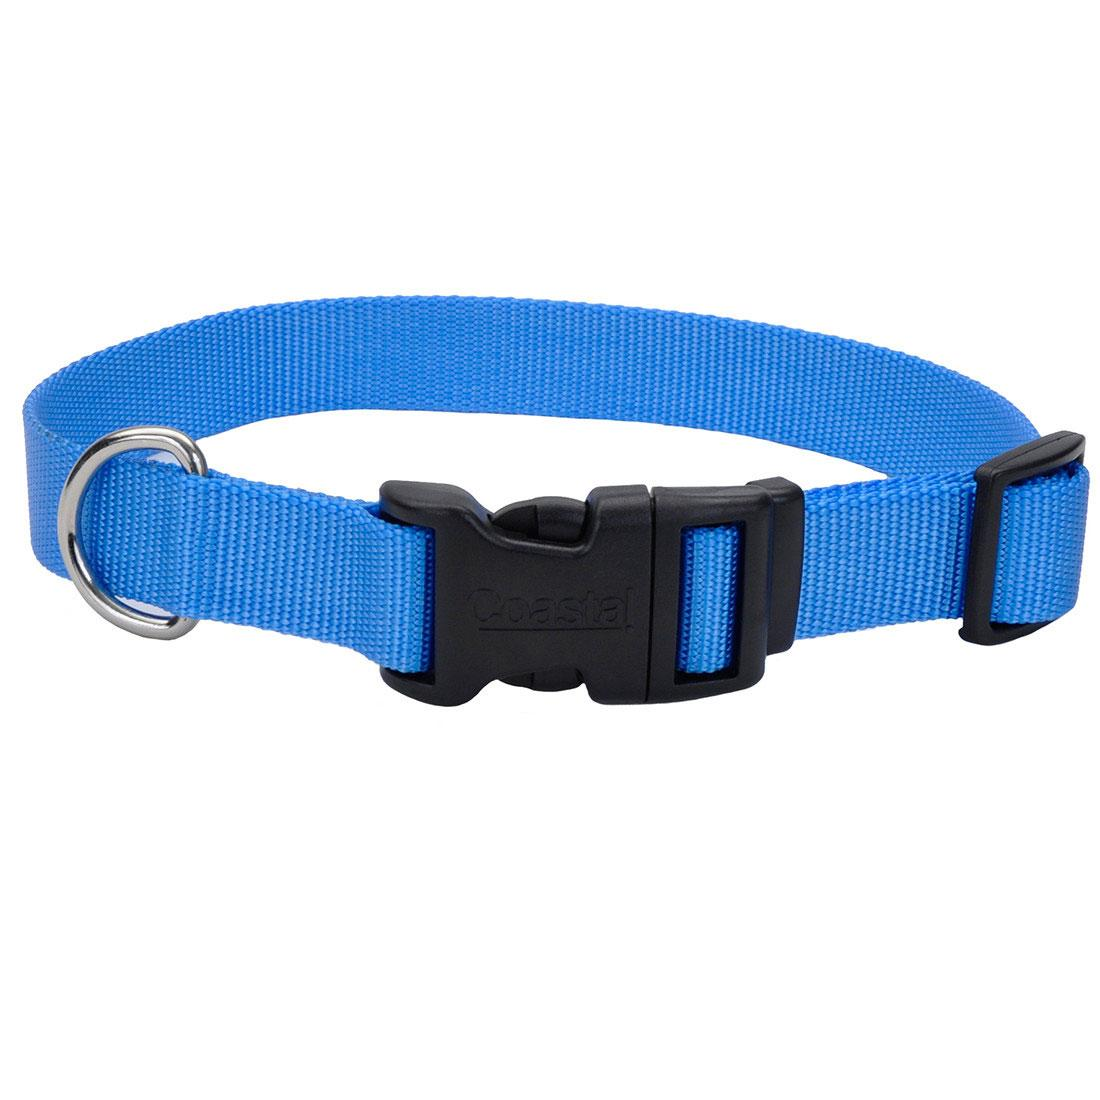 Coastal Adjustable Collar with Plastic Buckle for Dogs, Blue Lagoon, 5/8-in x 10-14-in